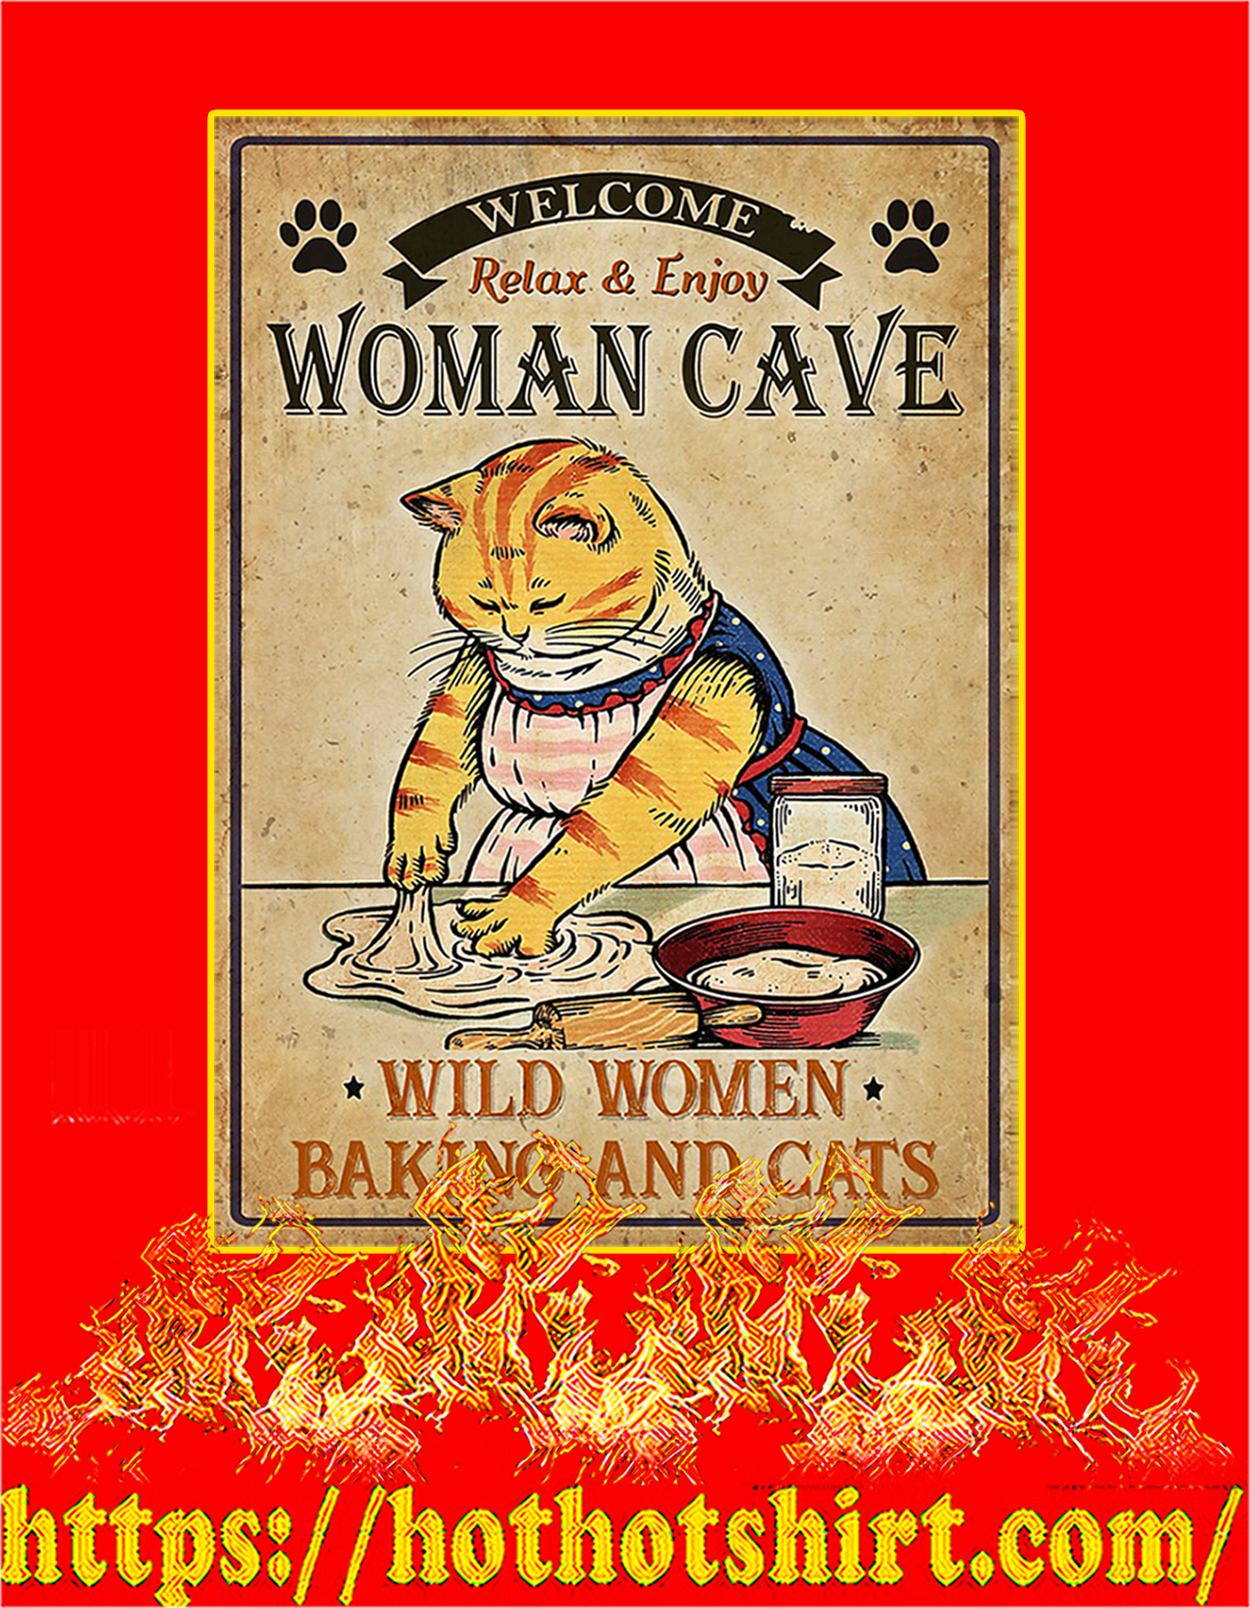 Welcome relax and enjoy woman cave wild women baking and cats poster - A3